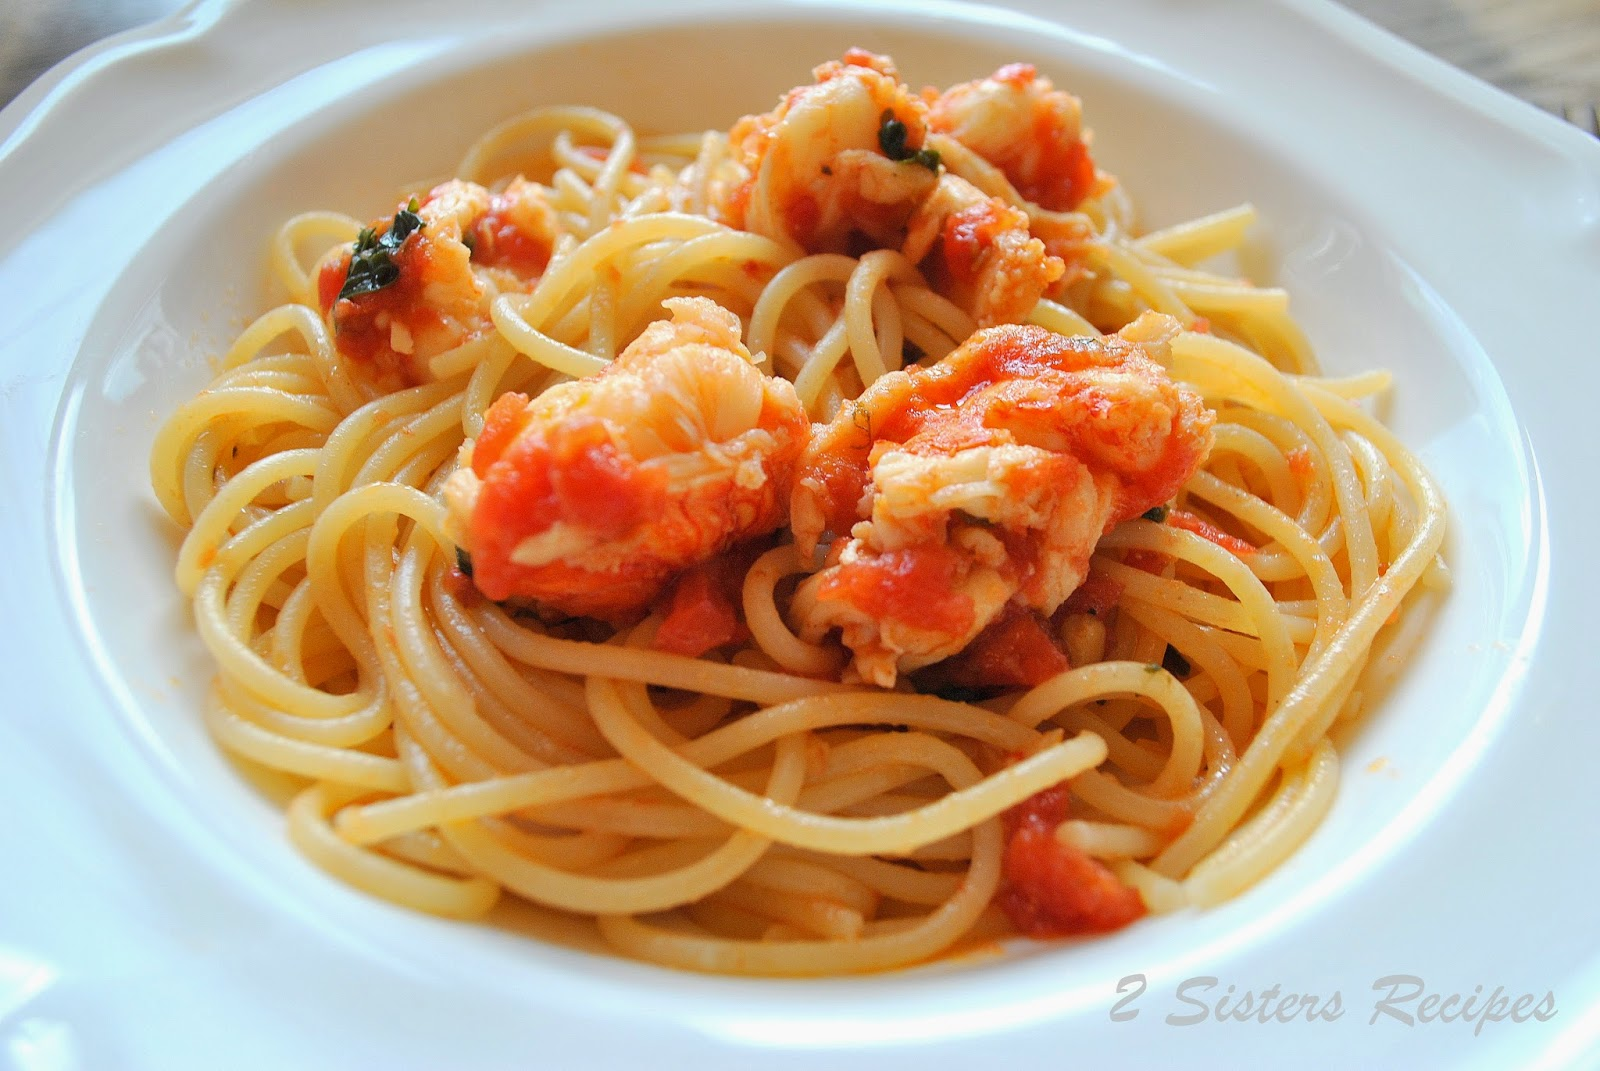 Spaghetti With Lobster Tails Sauce 2 Sisters Recipes By Anna And Liz